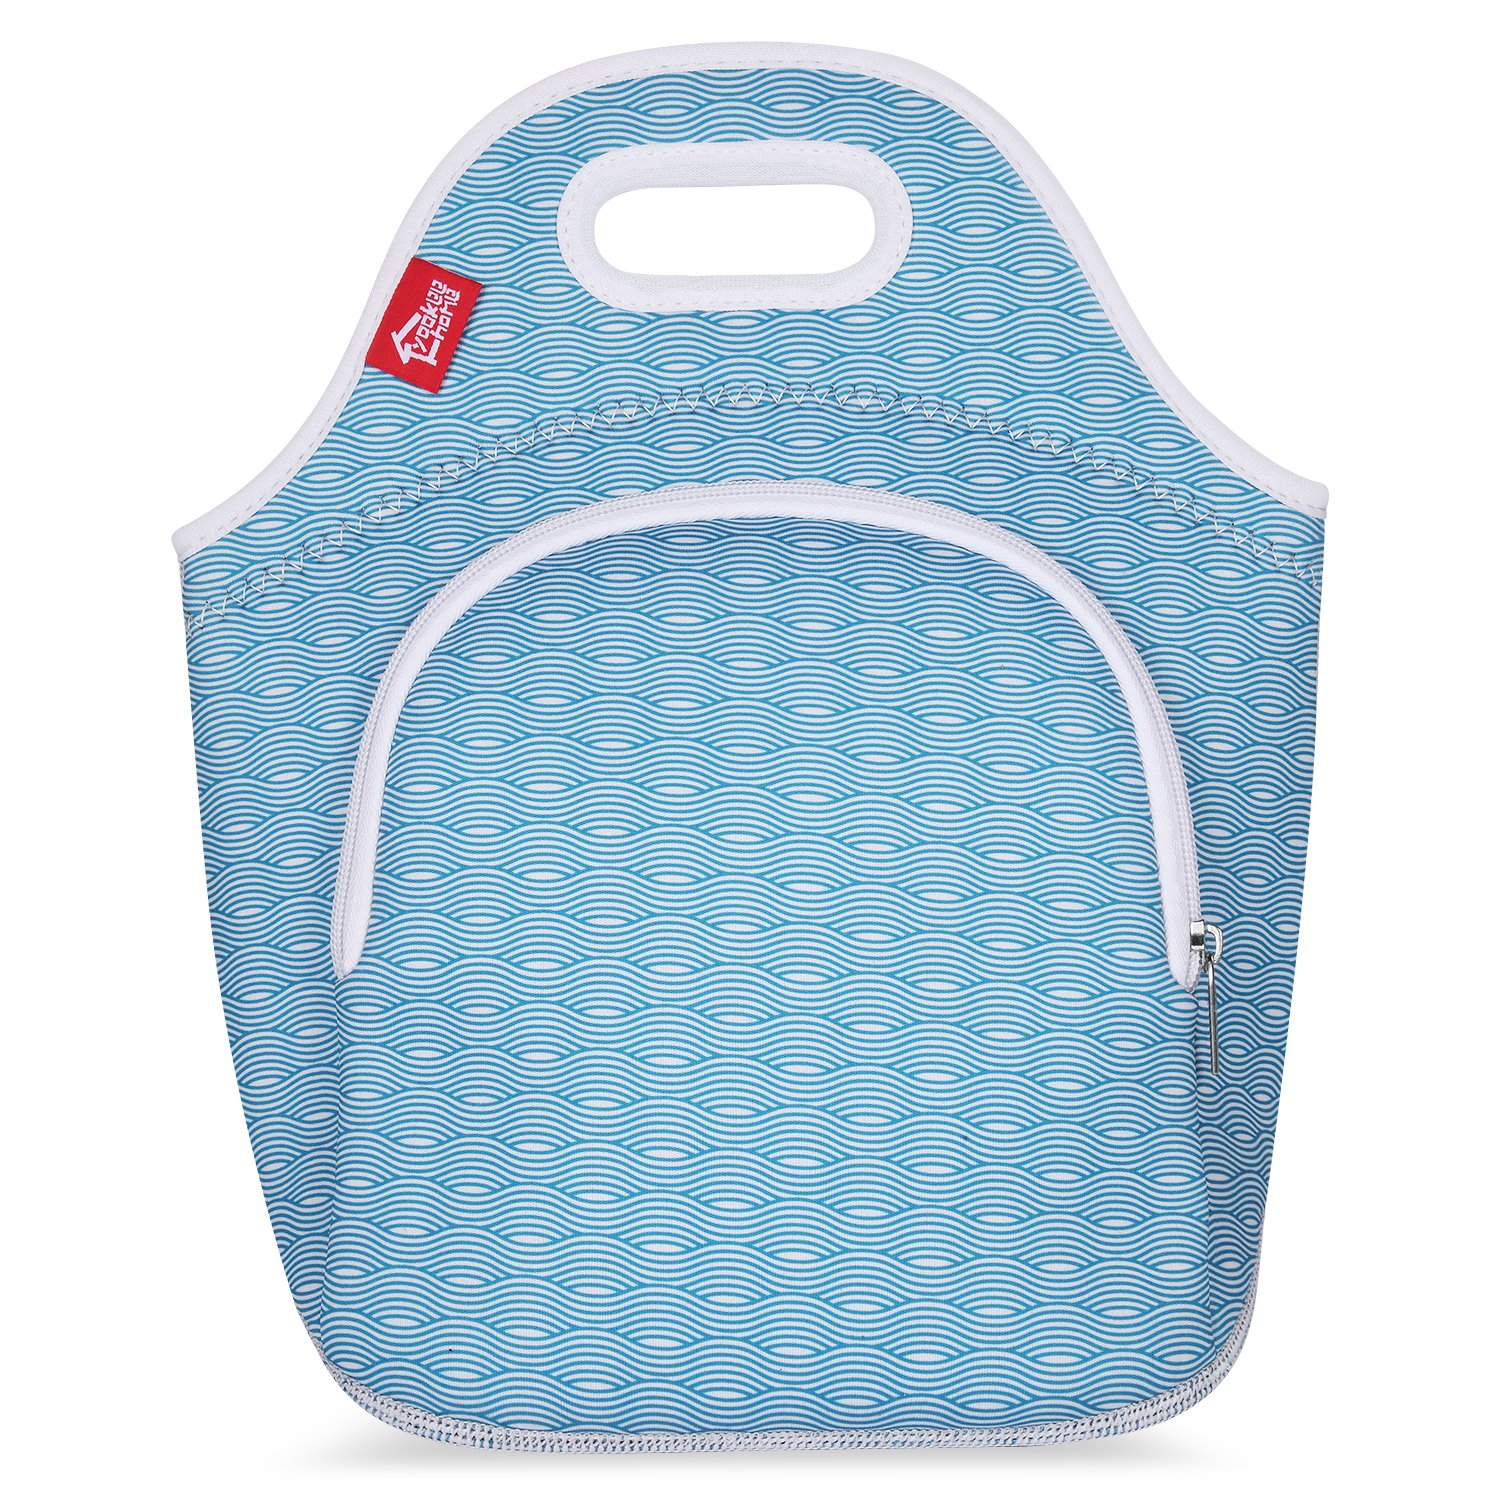 Neoprene Lunch Tote Bags with Pockets, Yookeehome Thick Insulated Thermal Cooler Blue Lunch Bags Waterproof Outdoor Travel Picnic Lunch Handbags Tote with Zipper